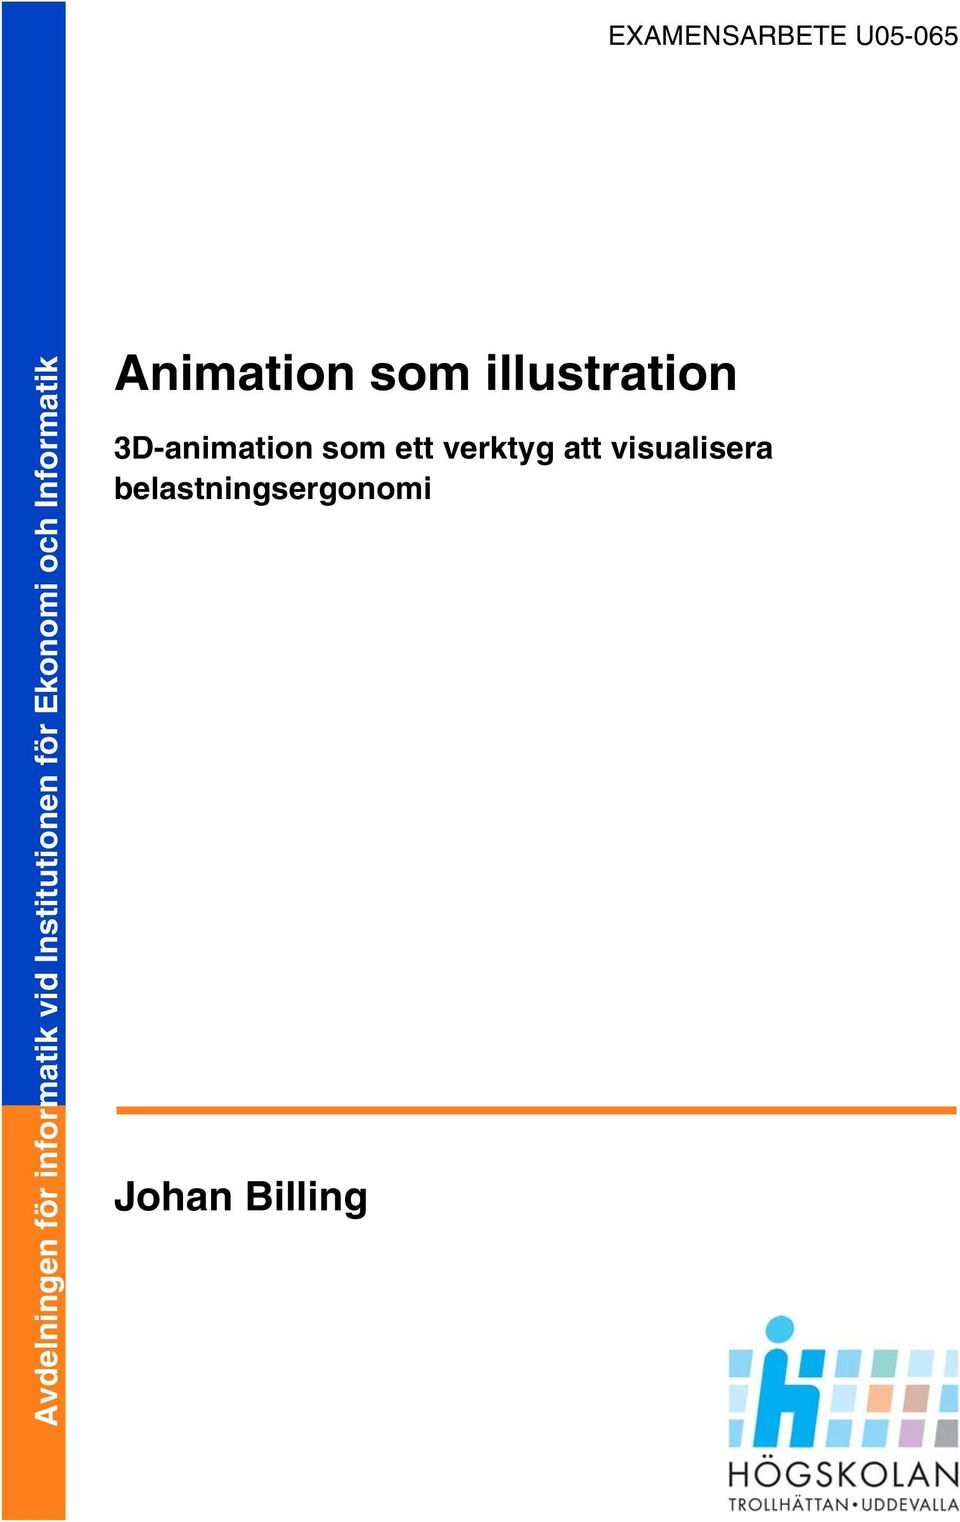 Animation som illustration 3D-animation som ett